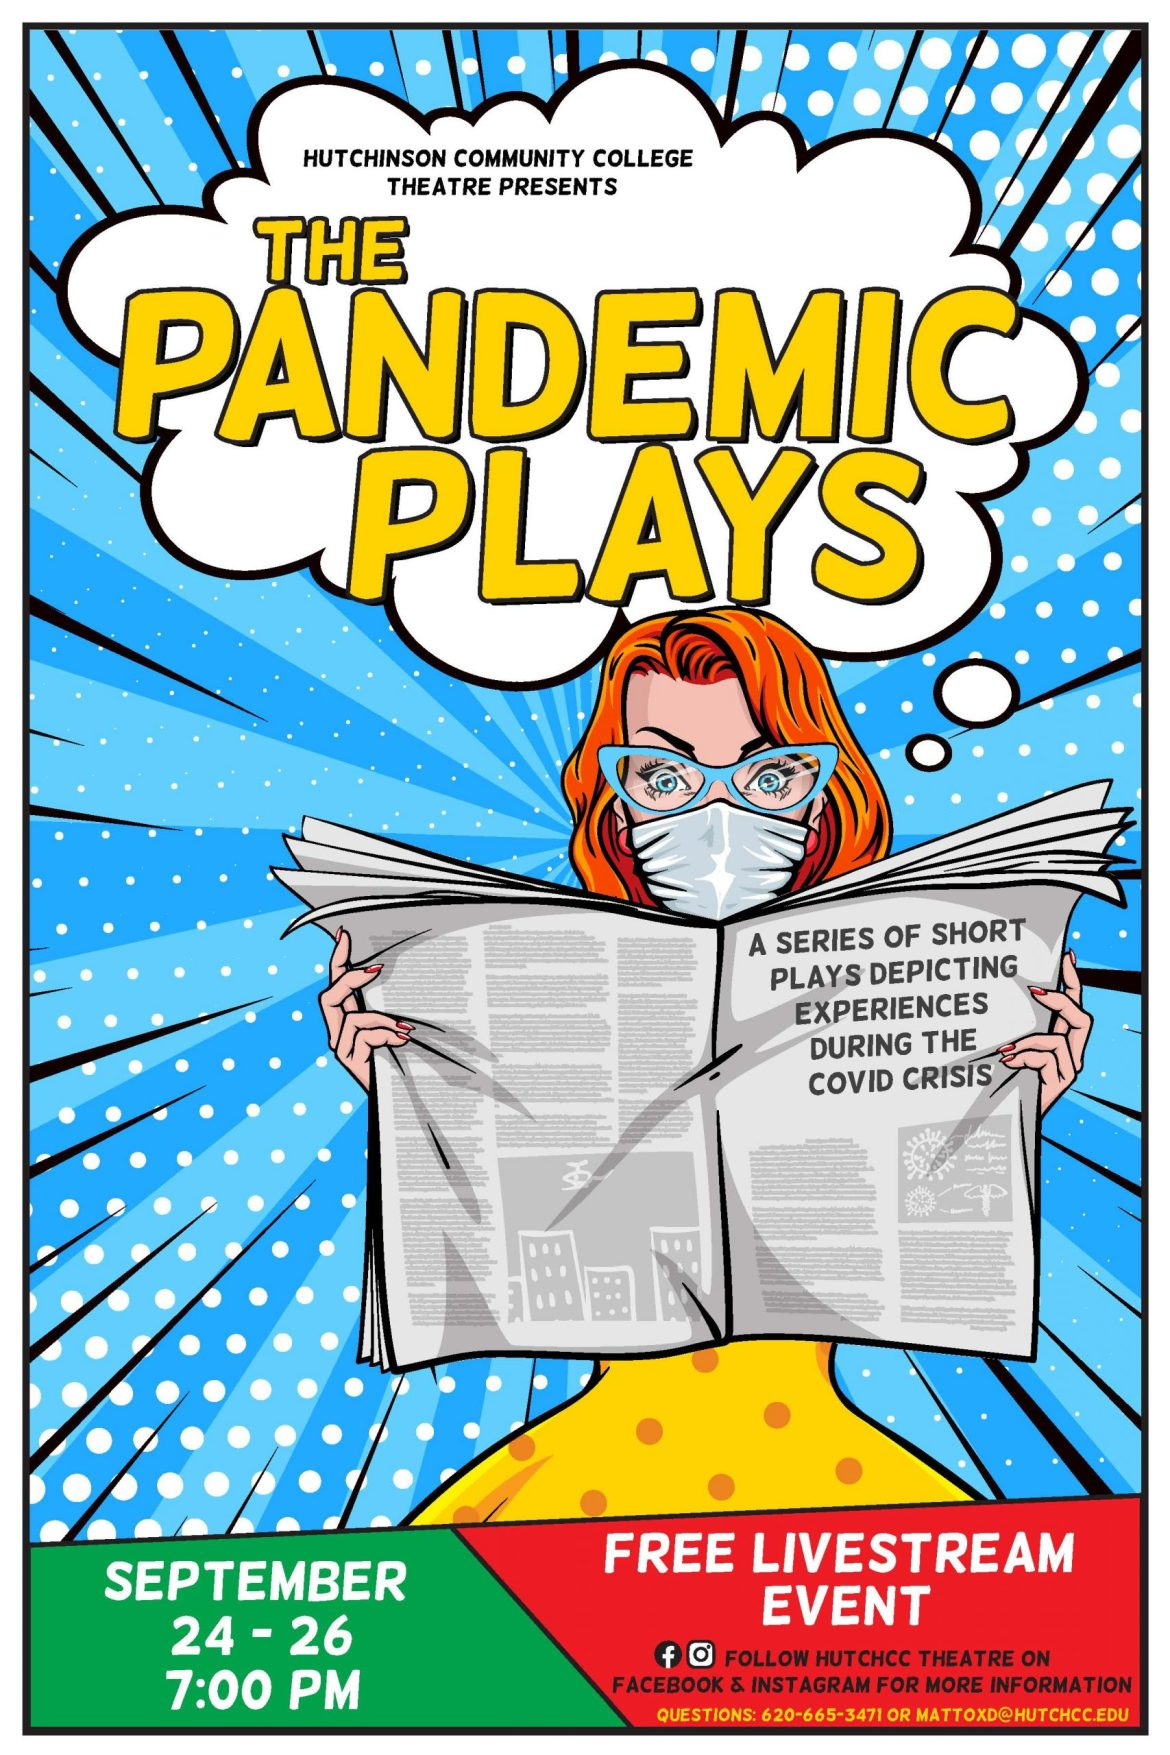 The show must go on – Theatre department Zooming in on 'Pandemic Plays